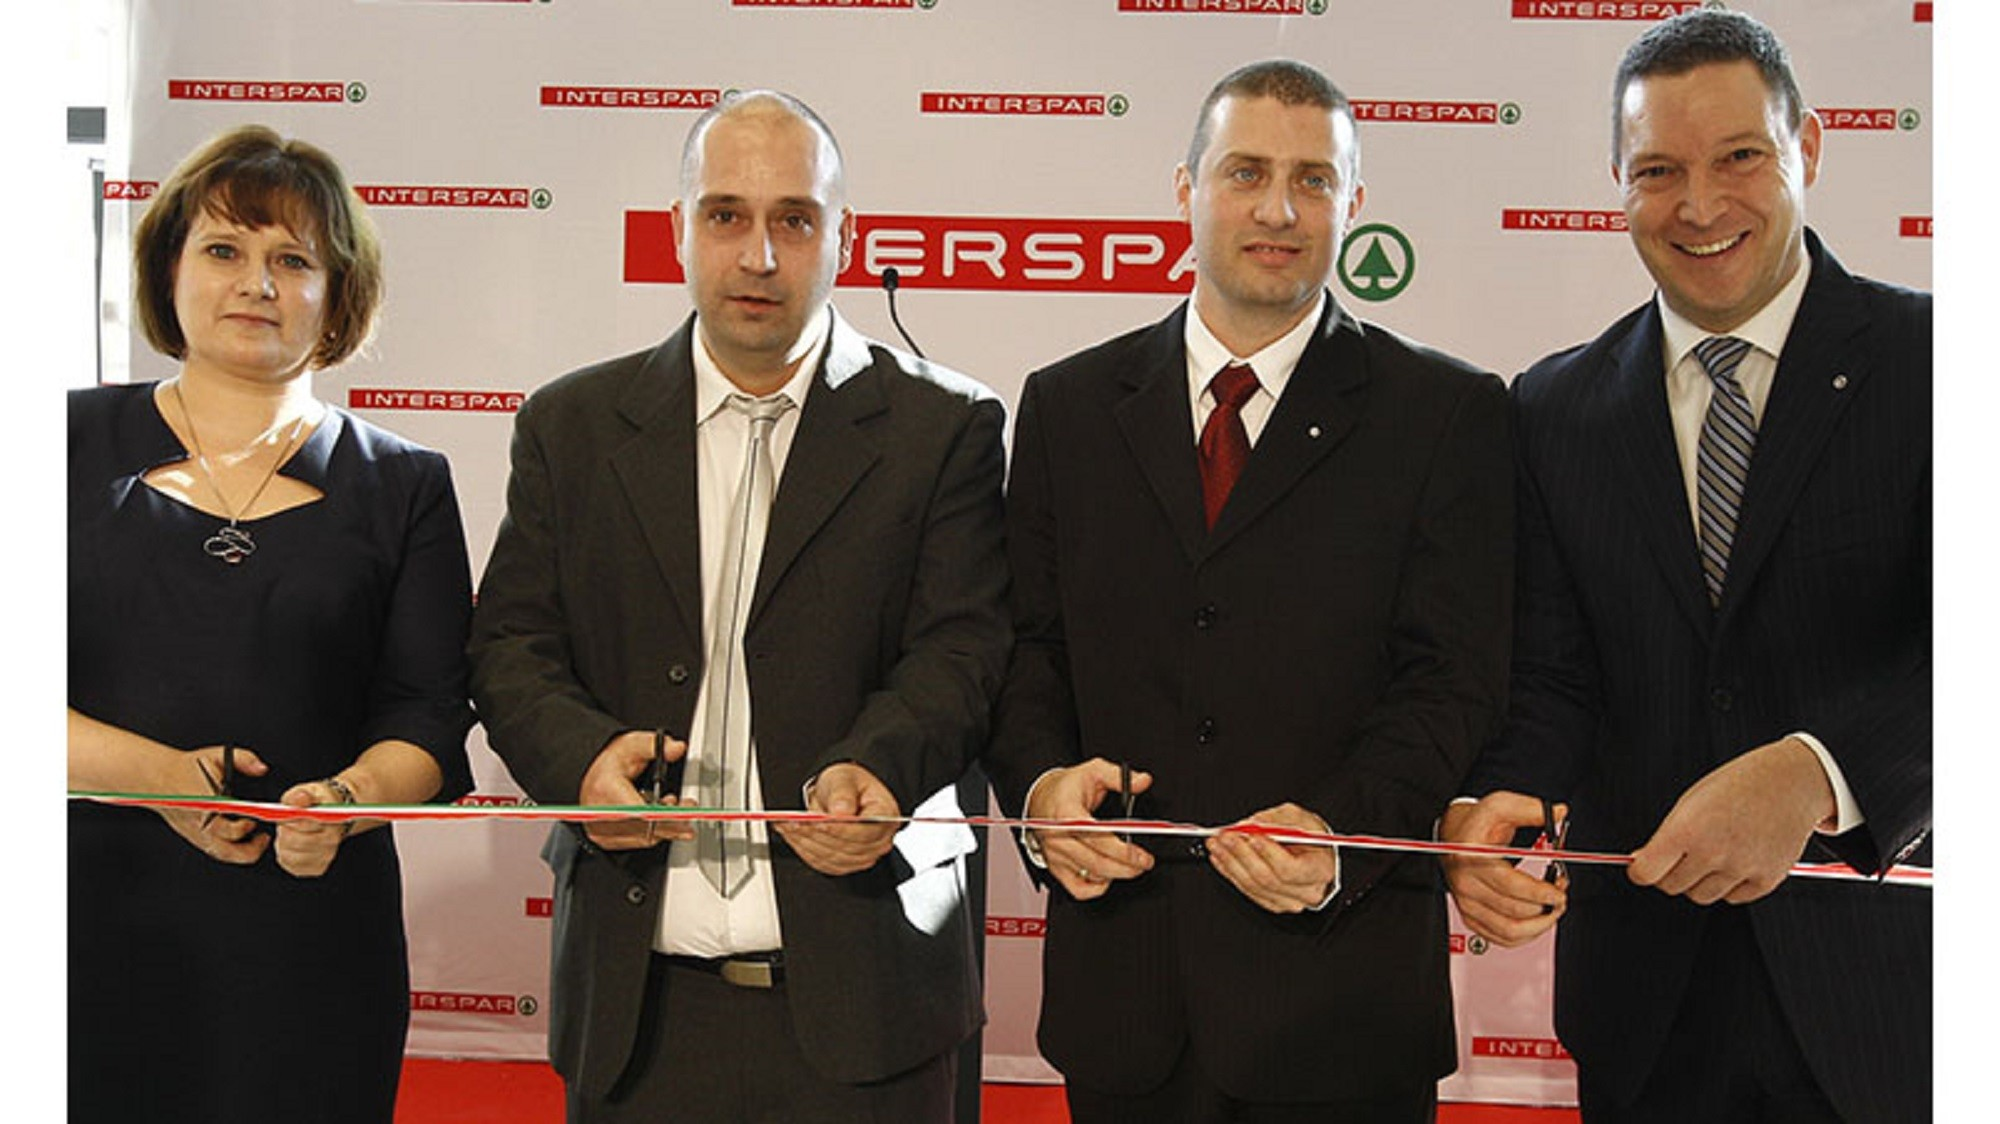 HU-Ribbon-cutting-ceremony-for-the-refreshed-Pesterzsébet-INTERSPAR750x500